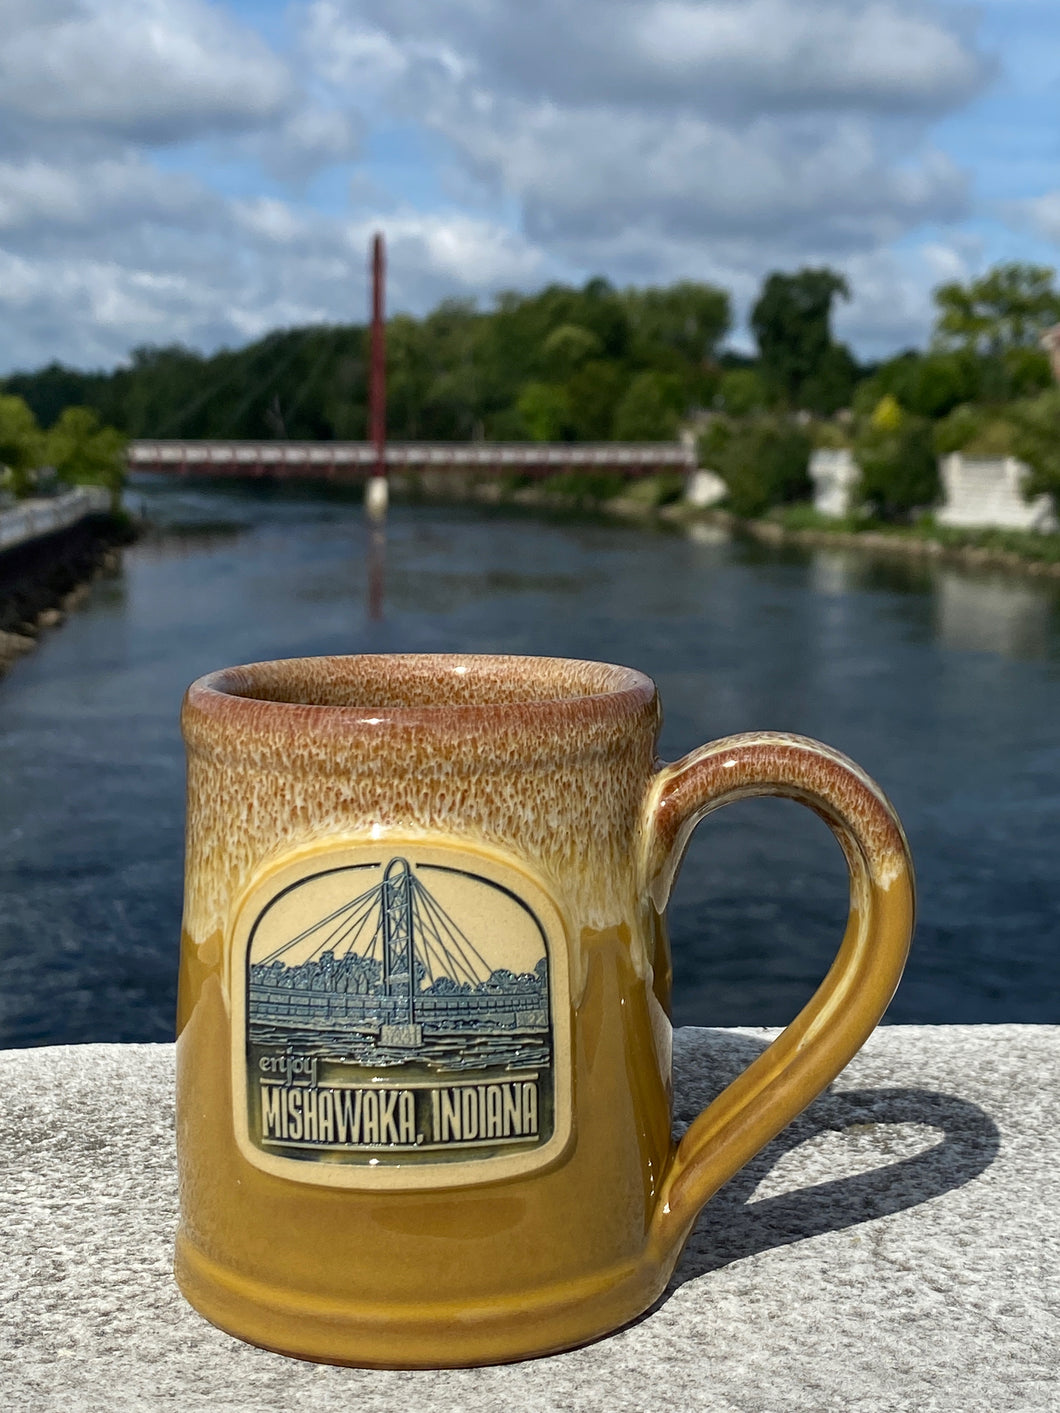 Mishawaka, Indiana Coffee Mug | Rancher